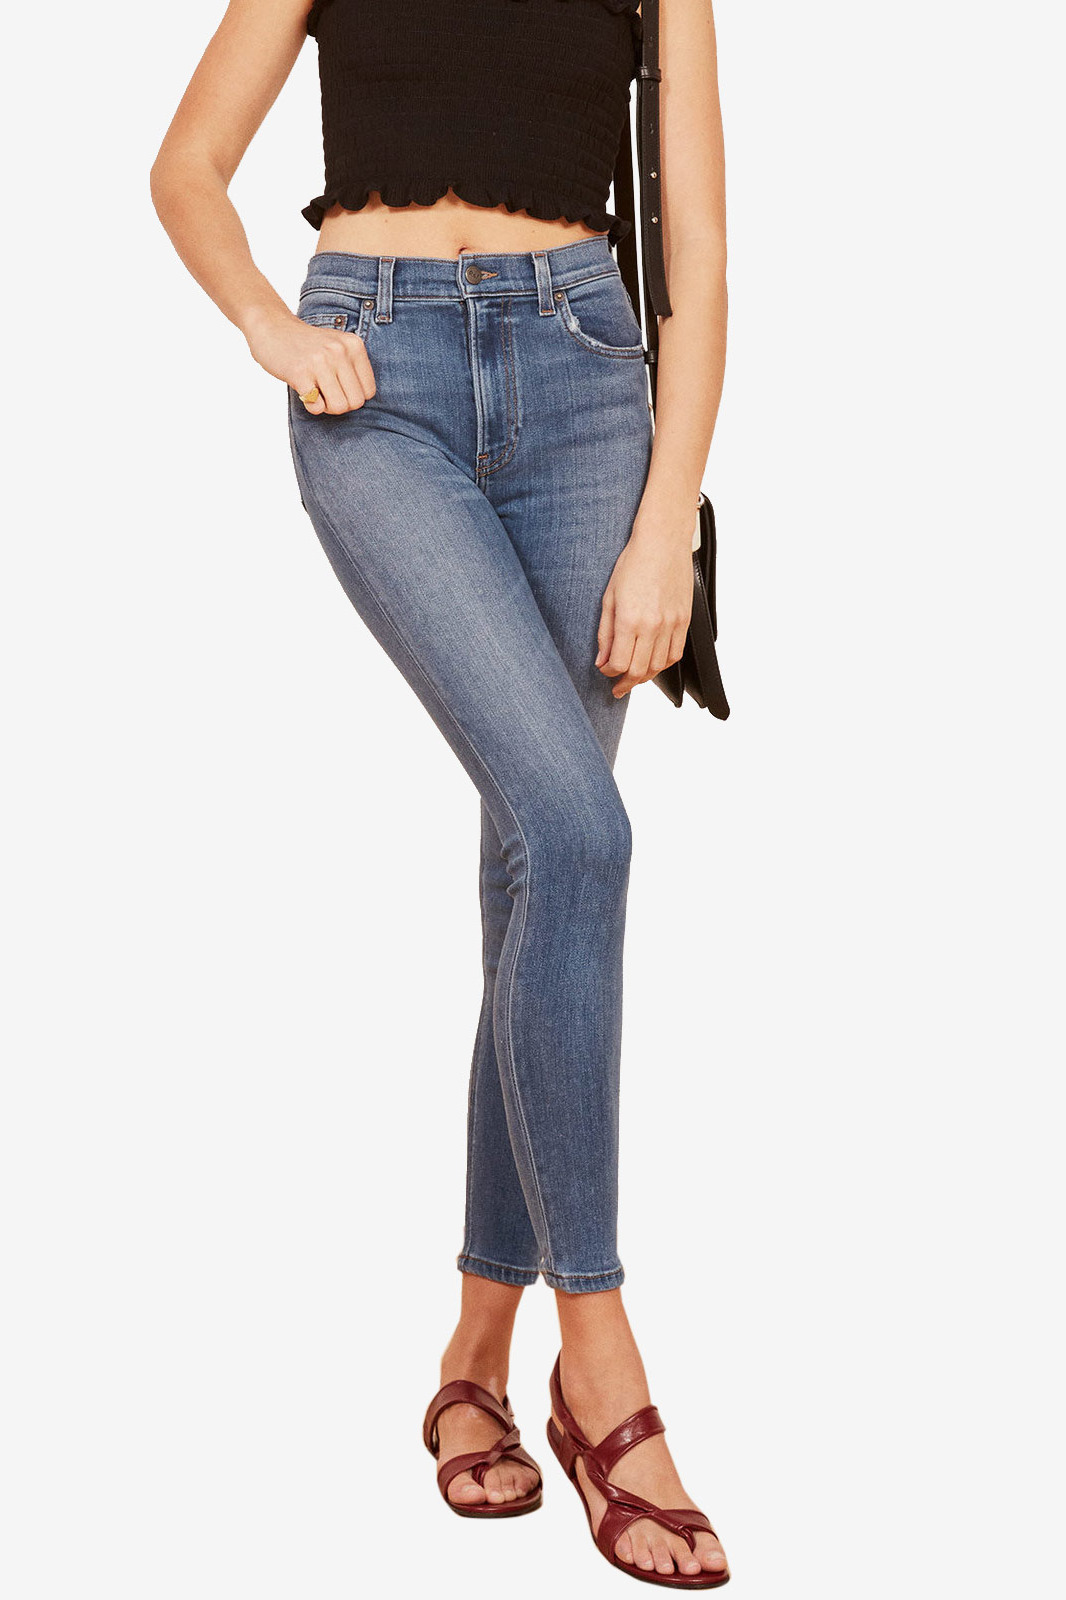 The Reformation Selma High & Skinny Jean